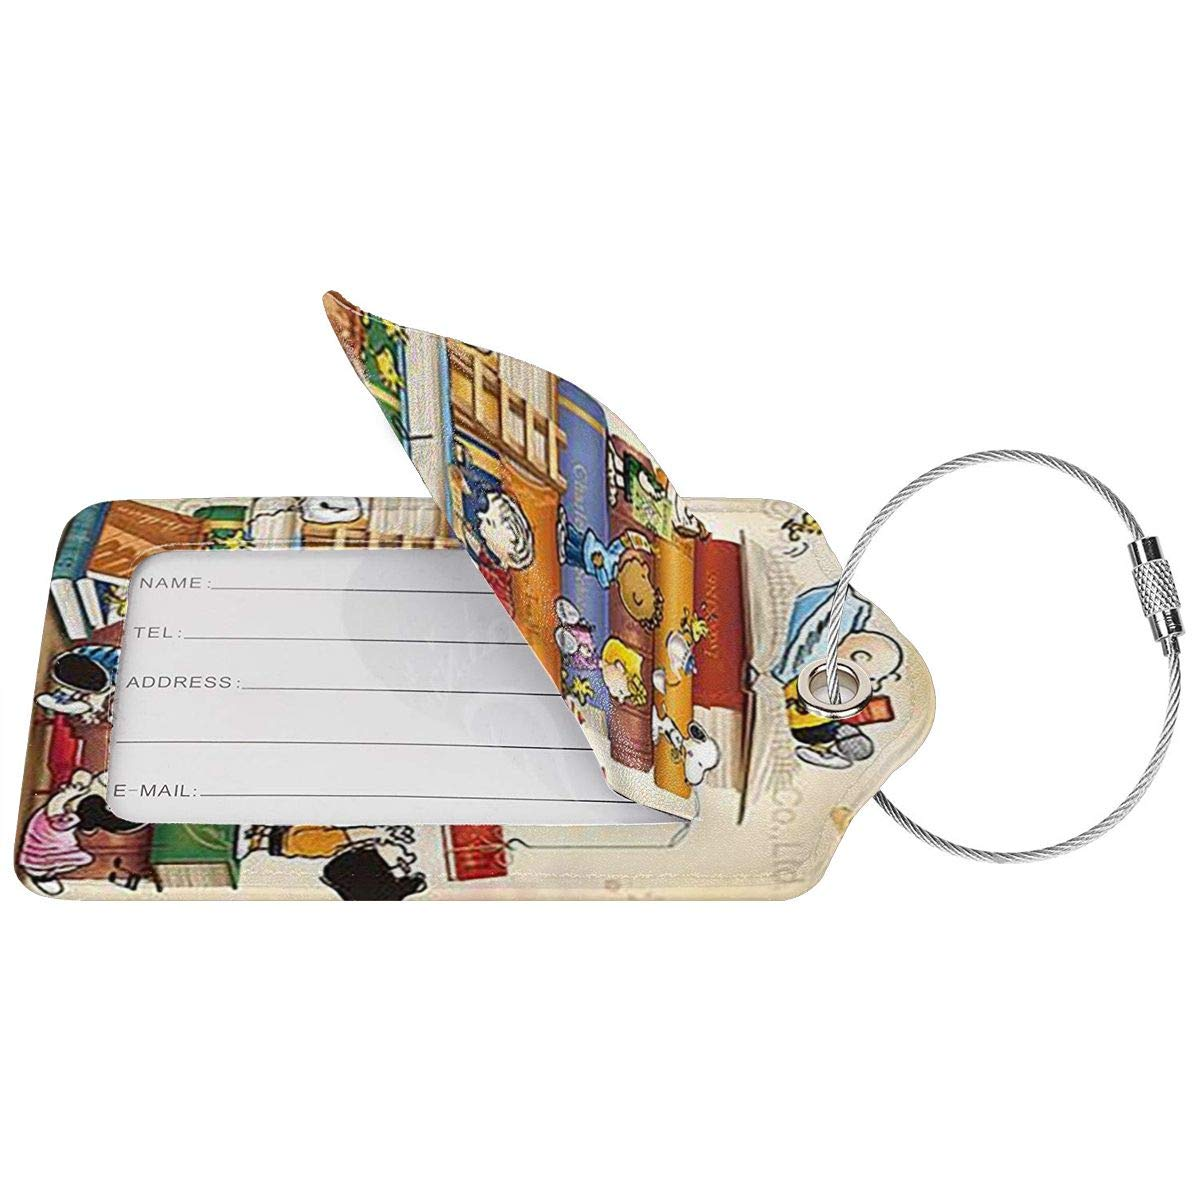 Fashion Snoopy With The Book Soft Leather Luggage Tags With Privacy Cover 1-4 Pcs Choose Suit For Travel,Vacation